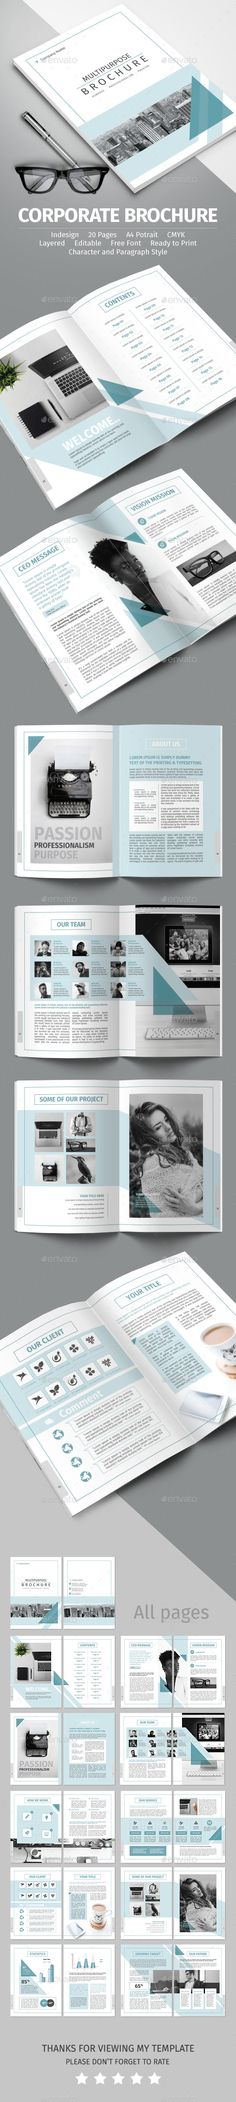 Corporate Brochure by The Features: Compatible with Adobe Indesign & 210297 mm inches) bleeds 3 mm 300 dpi CMYK, Read Brochure Layout, Brochure Design, Branding Design, Brochure Template, Corporate Design, Corporate Brochure, Web Design, Layout Design, Booklet Design